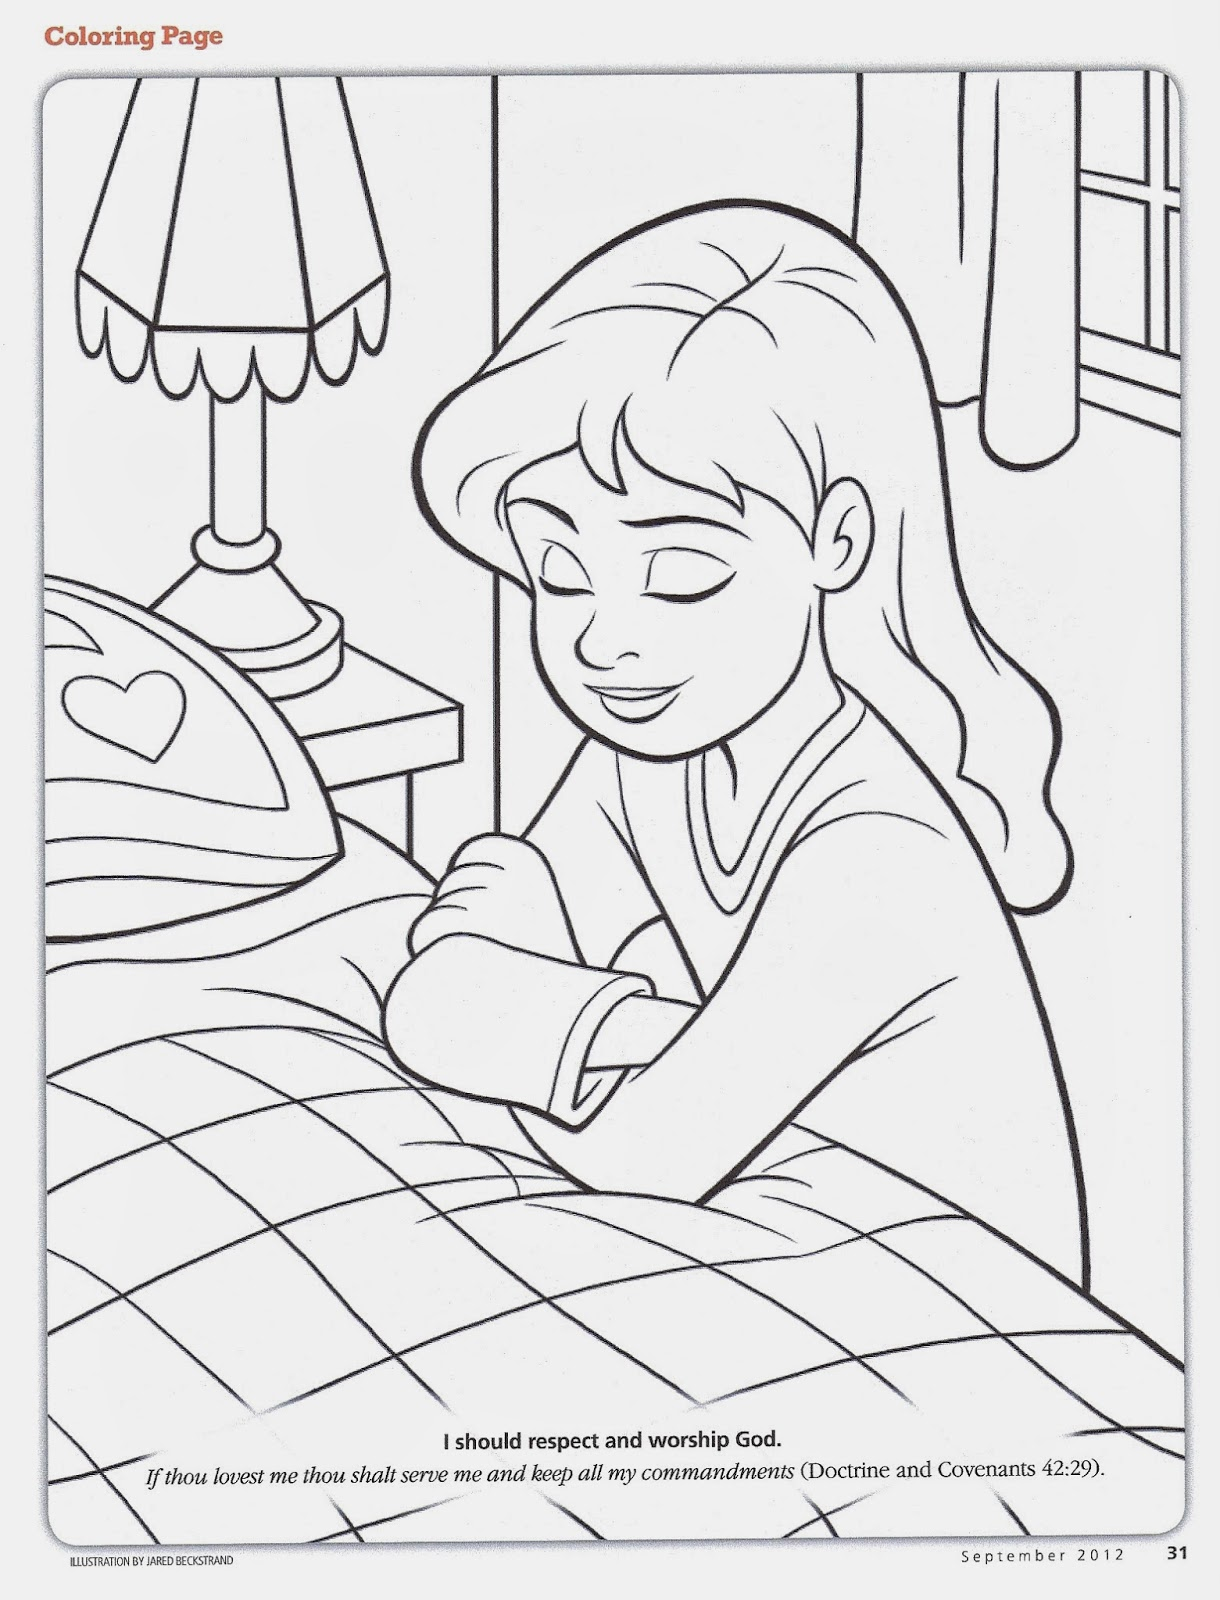 coloring pages about prayer - happy clean living primary 2 lesson 10